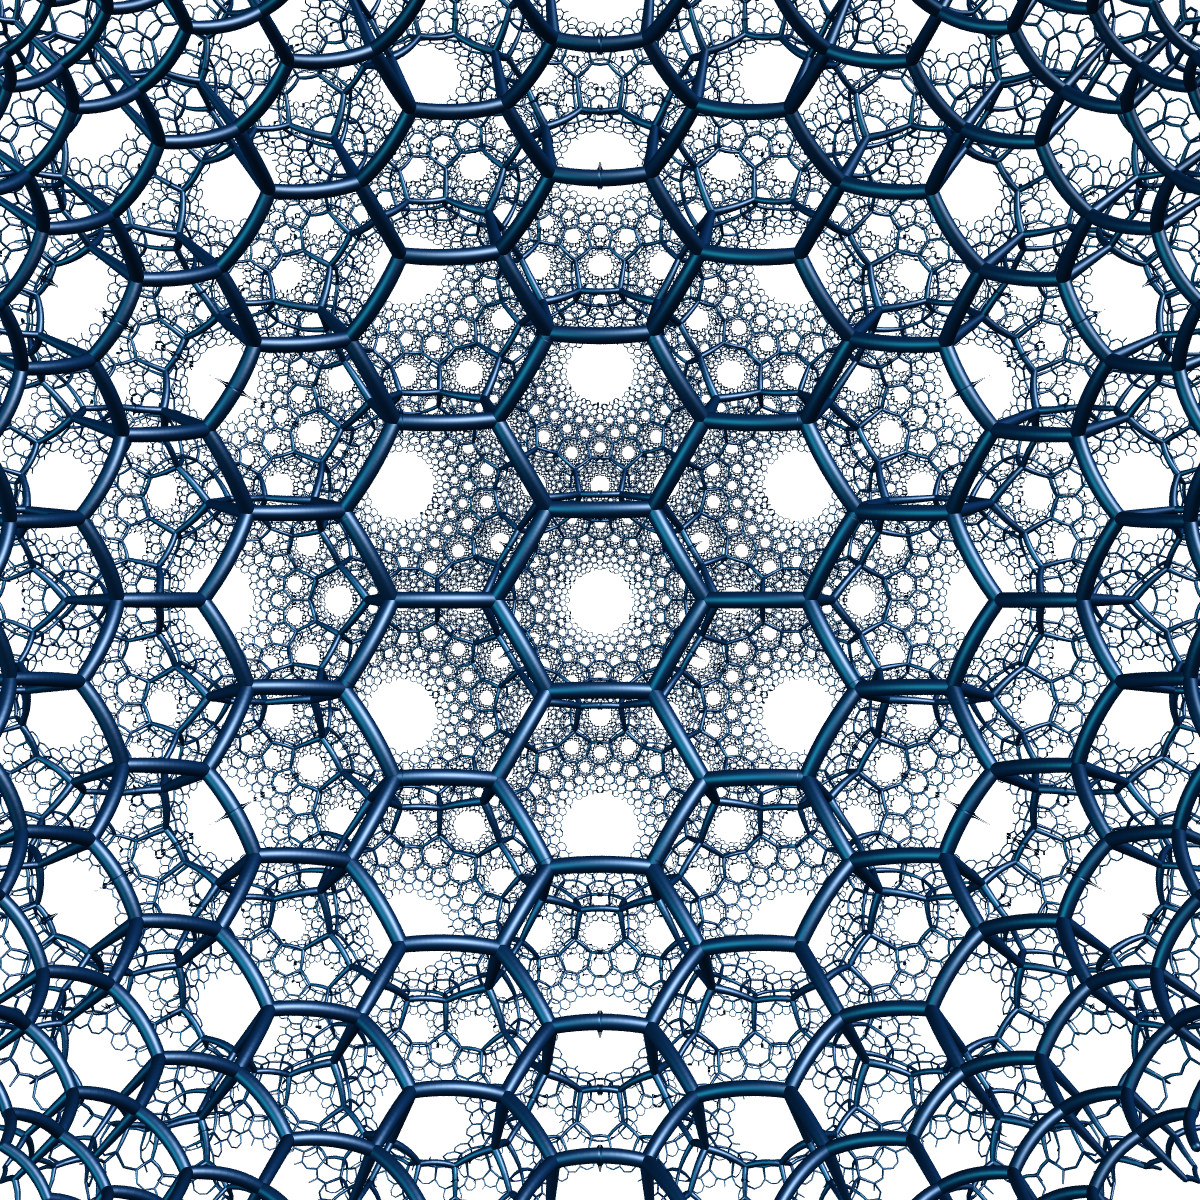 File:Hyperbolic 3d hexagonal tiling.png - Wikimedia Commons